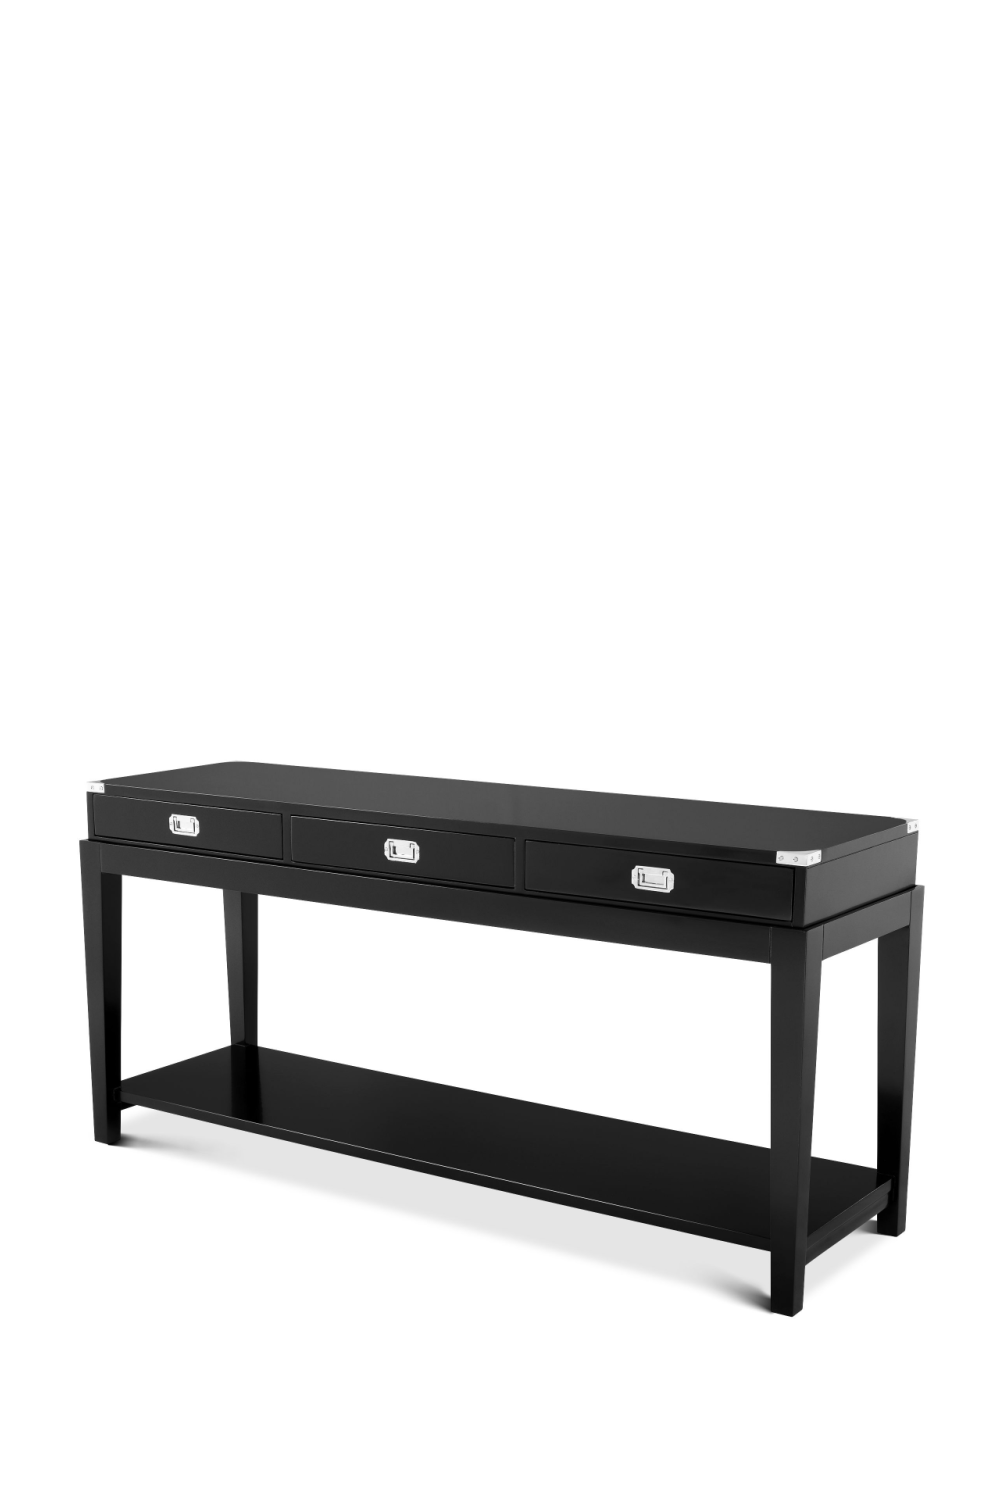 Black Console Table | Eichholtz Military | Woodfurniture.com